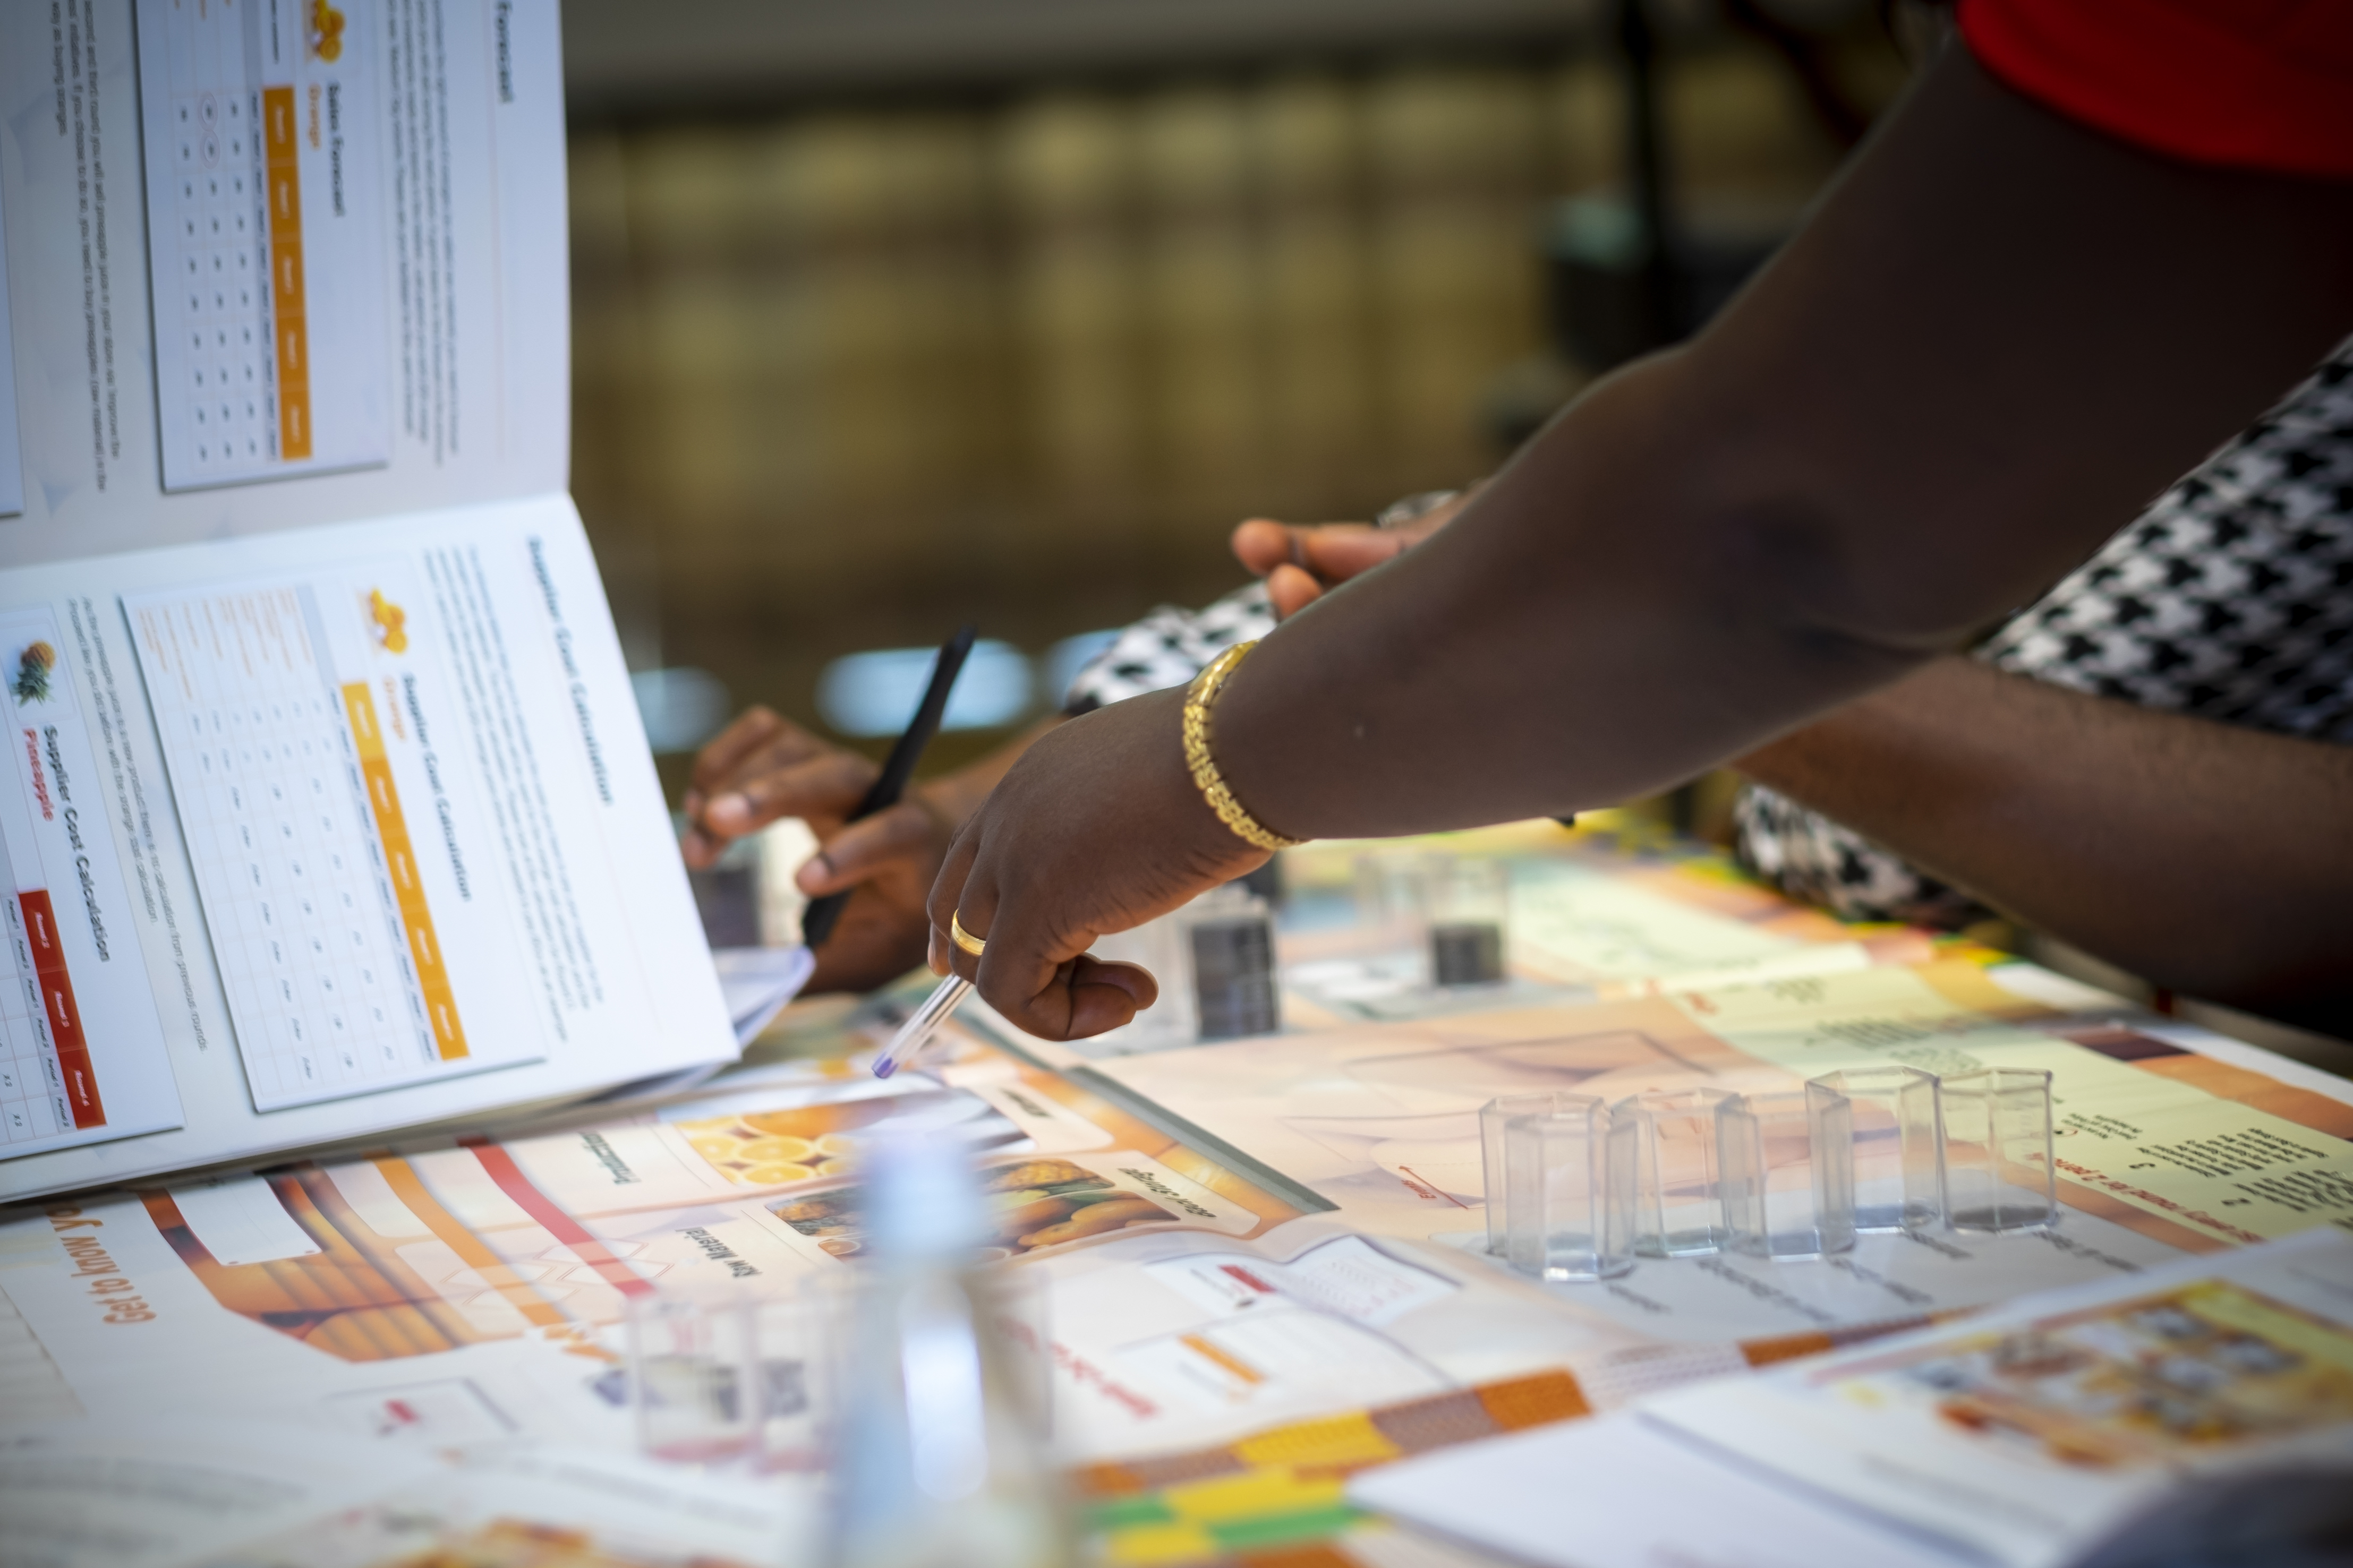 Training for SMEs on financial skills and services in Ghana